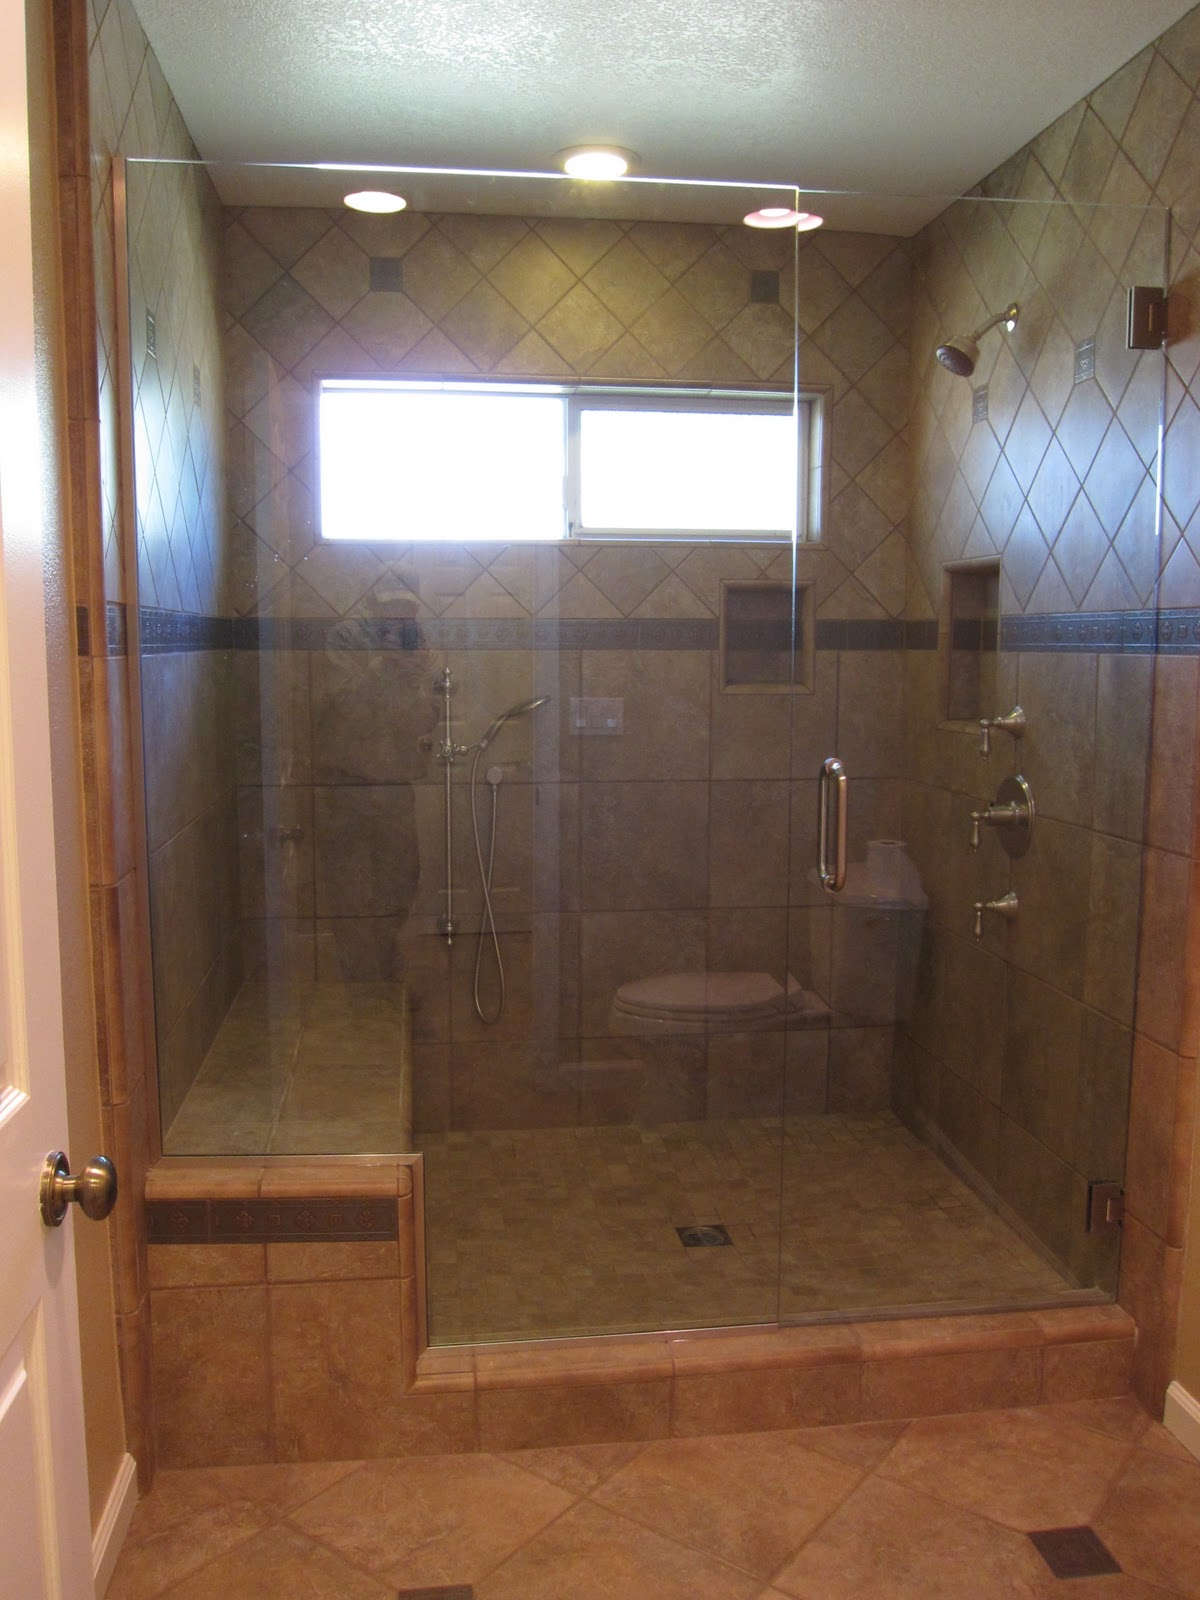 Bathtub Shower Doors | what to wear with khaki pants